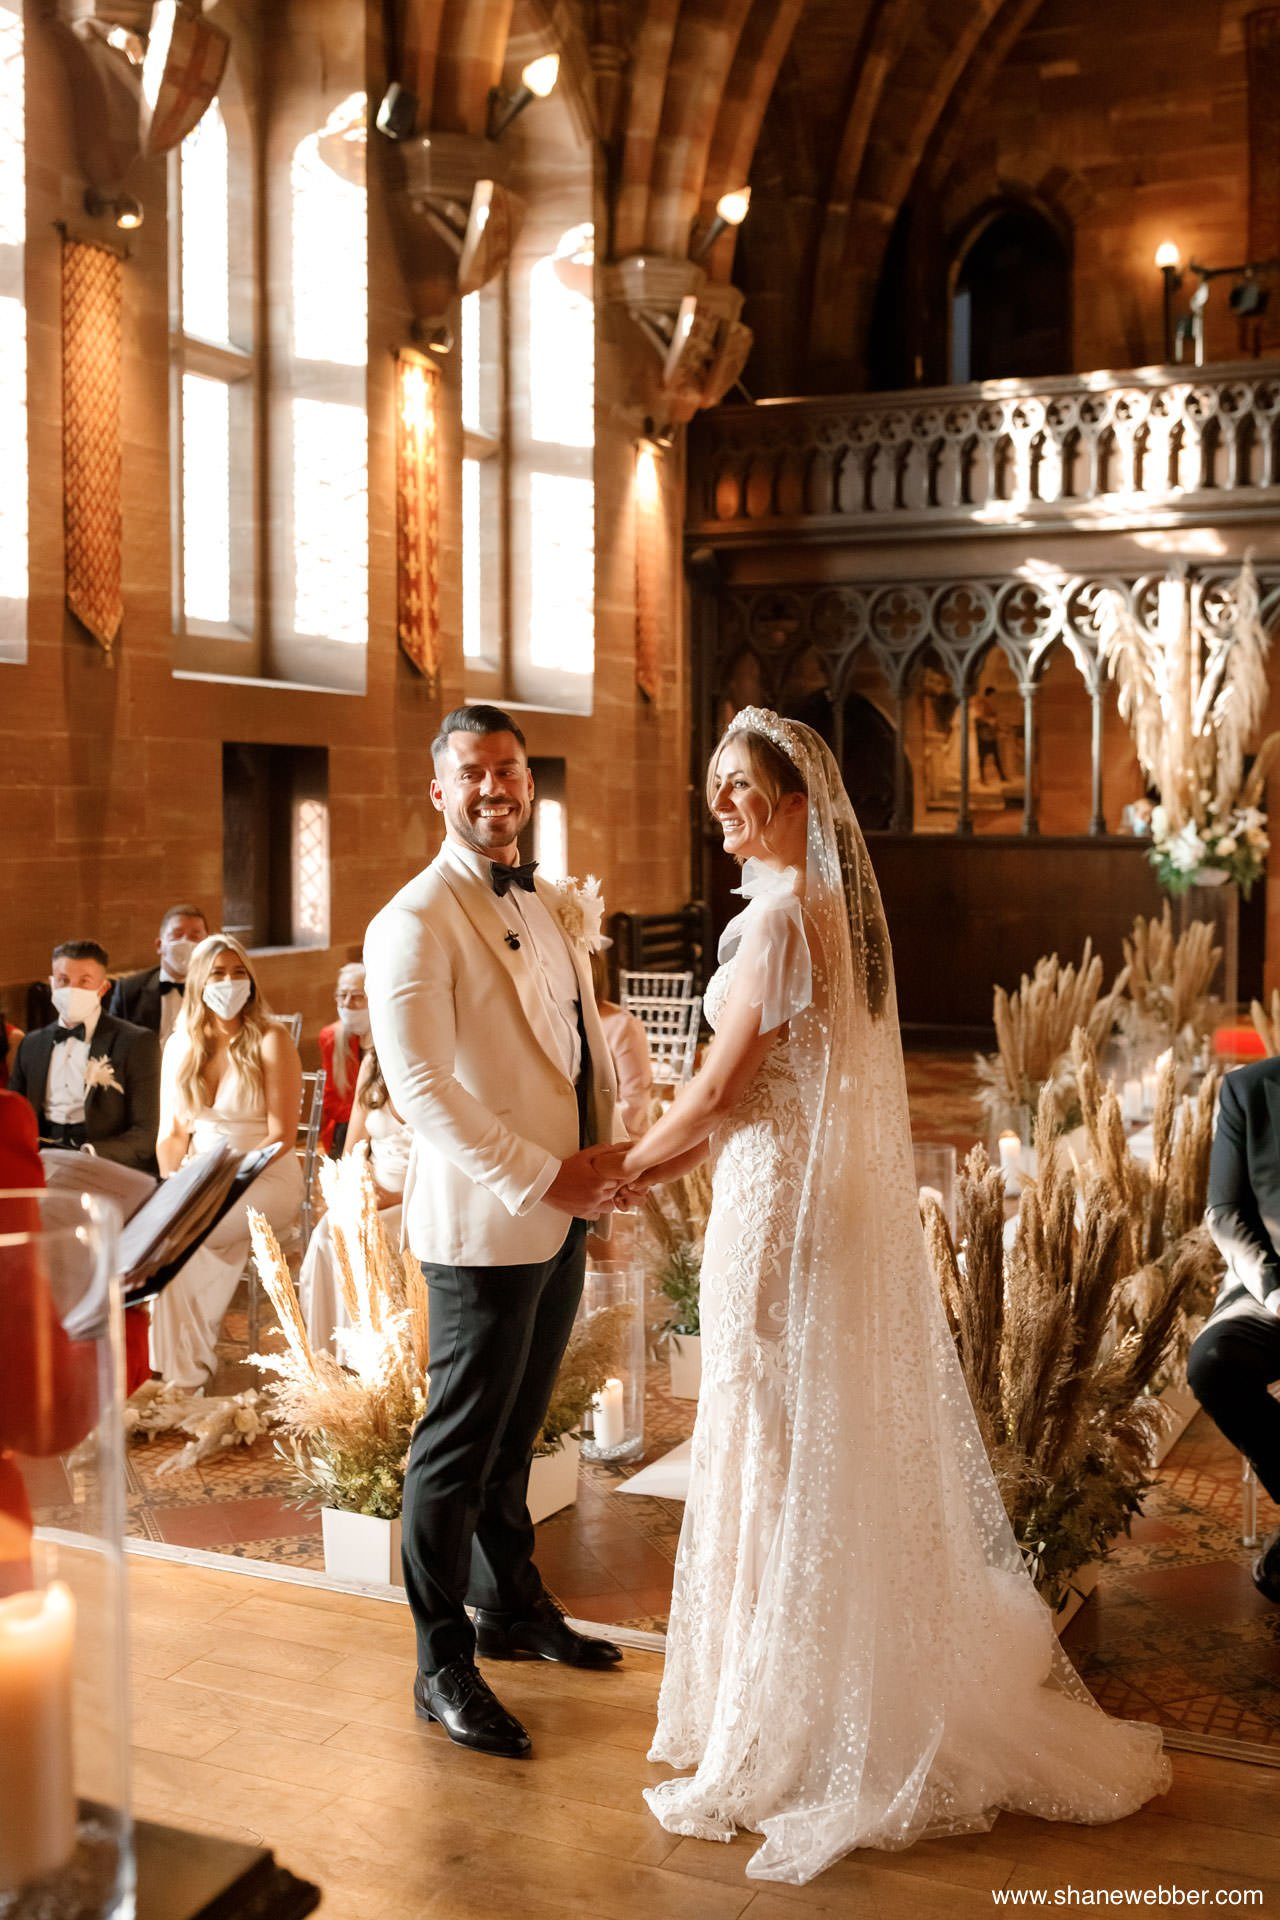 Natural wedding ceremony photography at Peckforton Castle